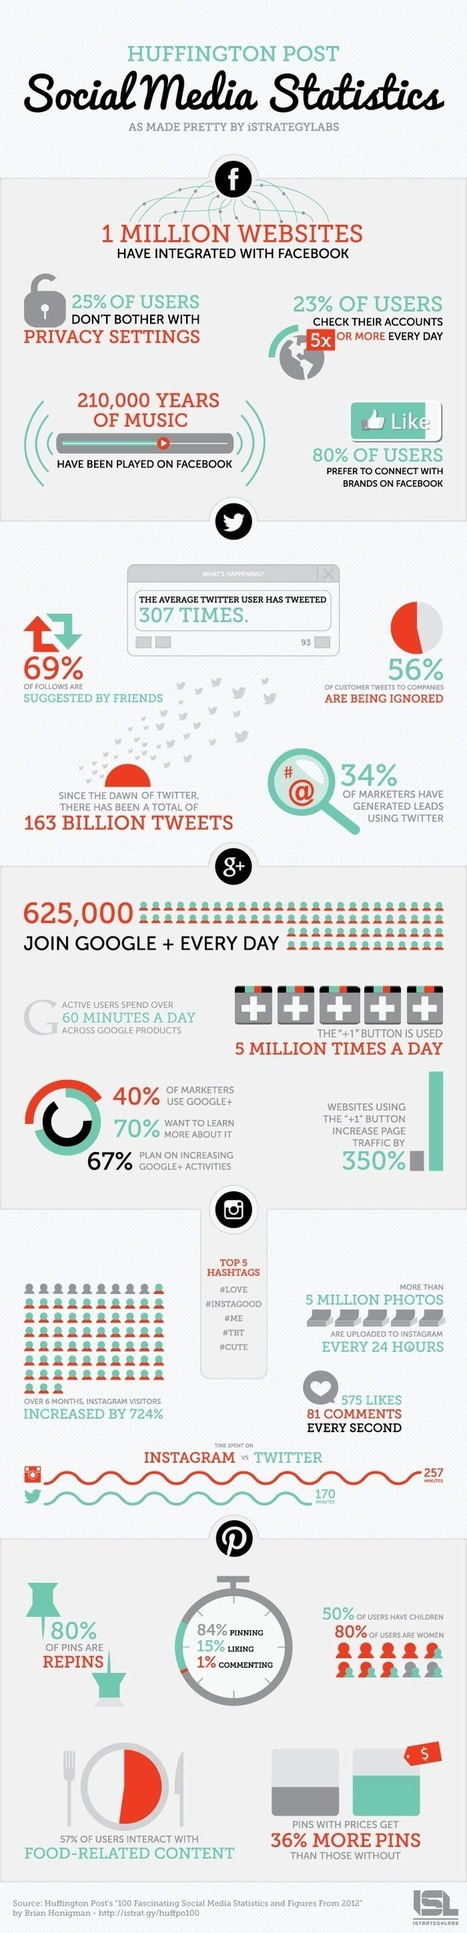 Infographic - Social Media Statistics for 2013 | anamelo | Scoop.it